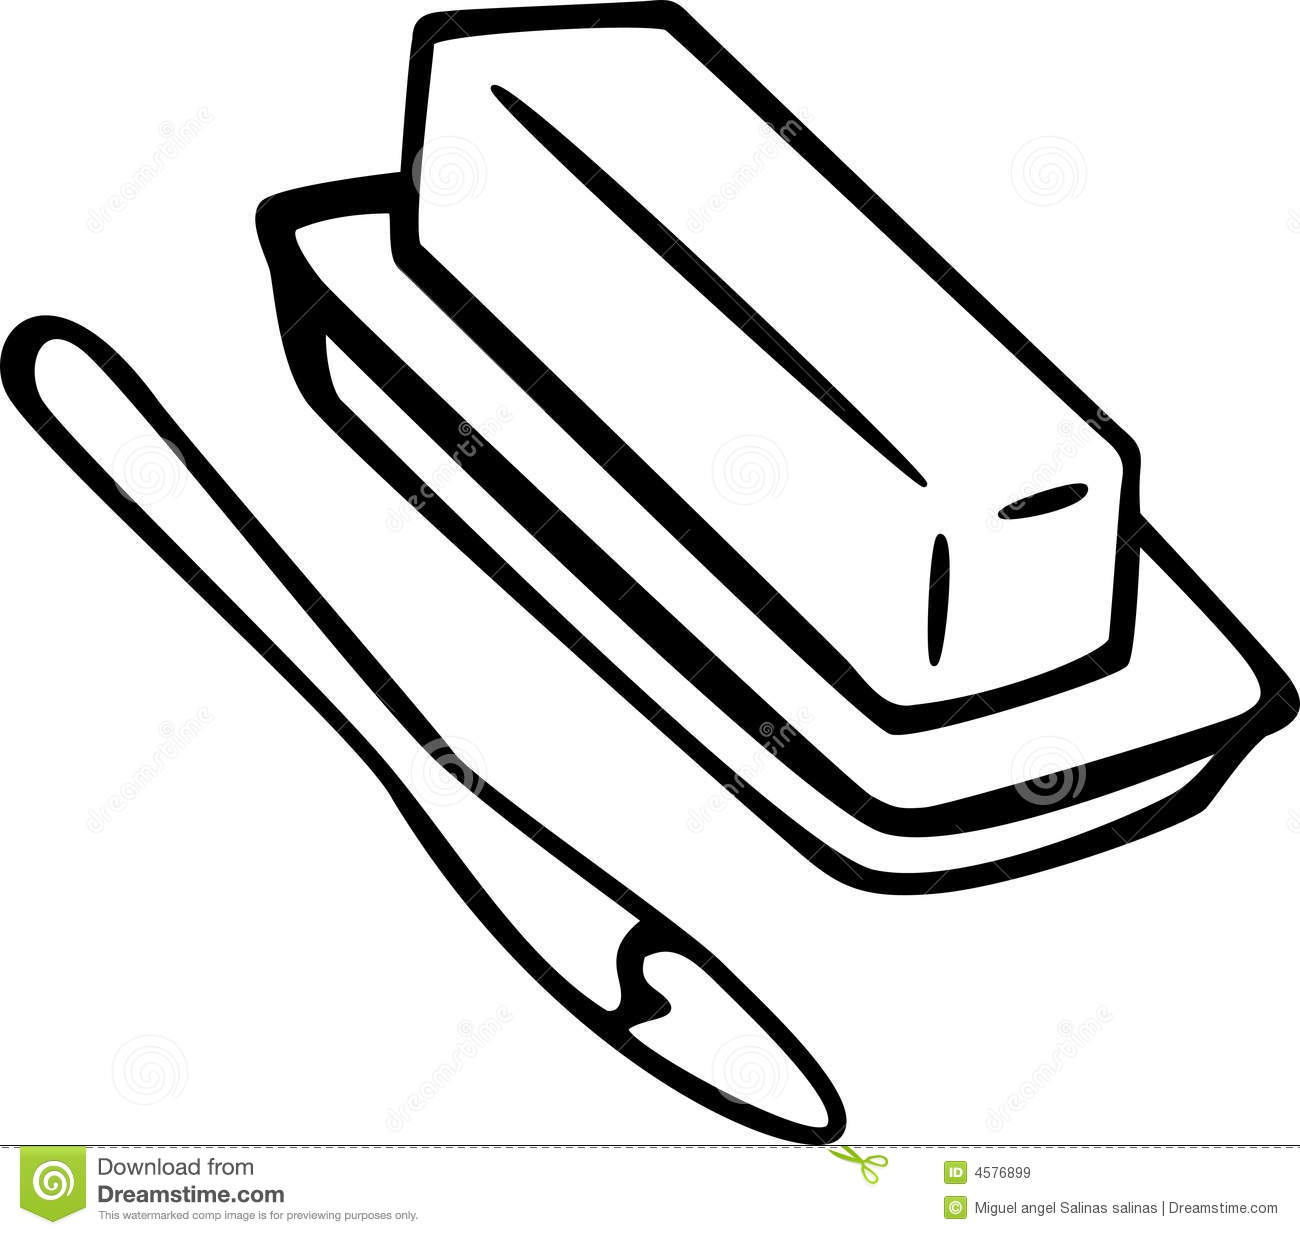 Gallery For > Butter Churn Clipart Black and White